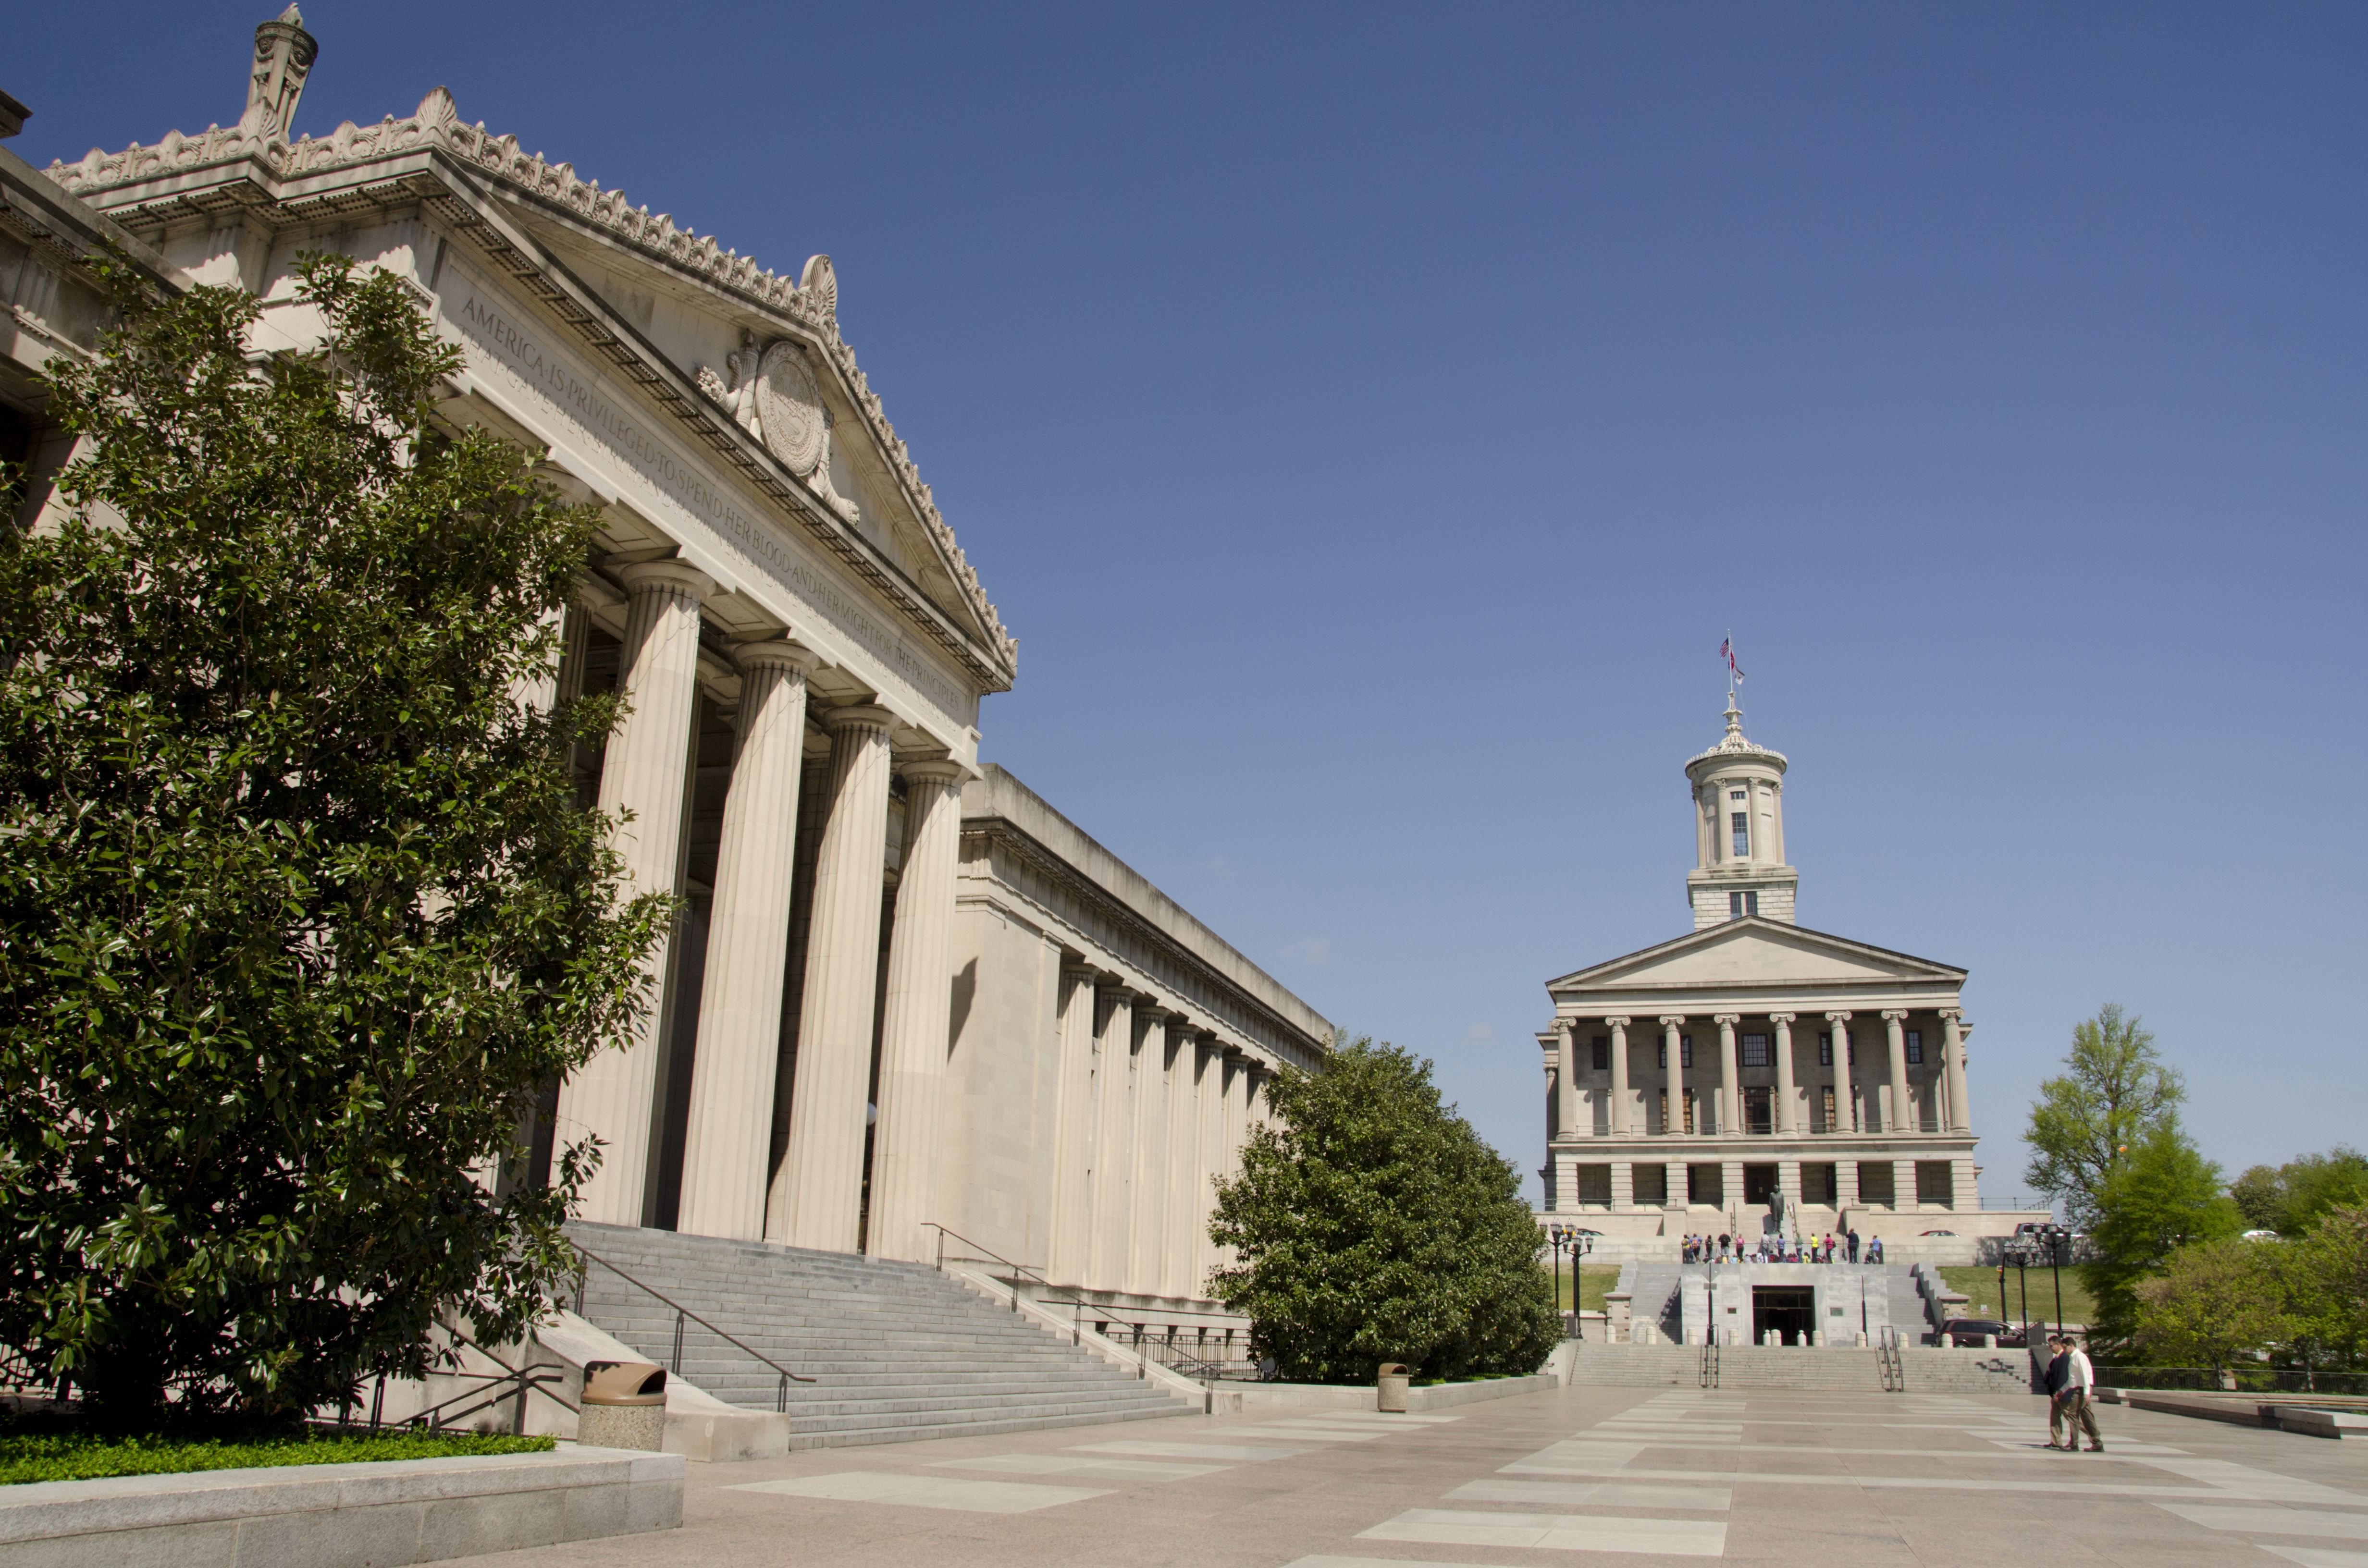 Legislative Plaza, Military history Branch of Tennessee State Museum, War Memorial building, Historic Tennessee State Capitol building, Nashville